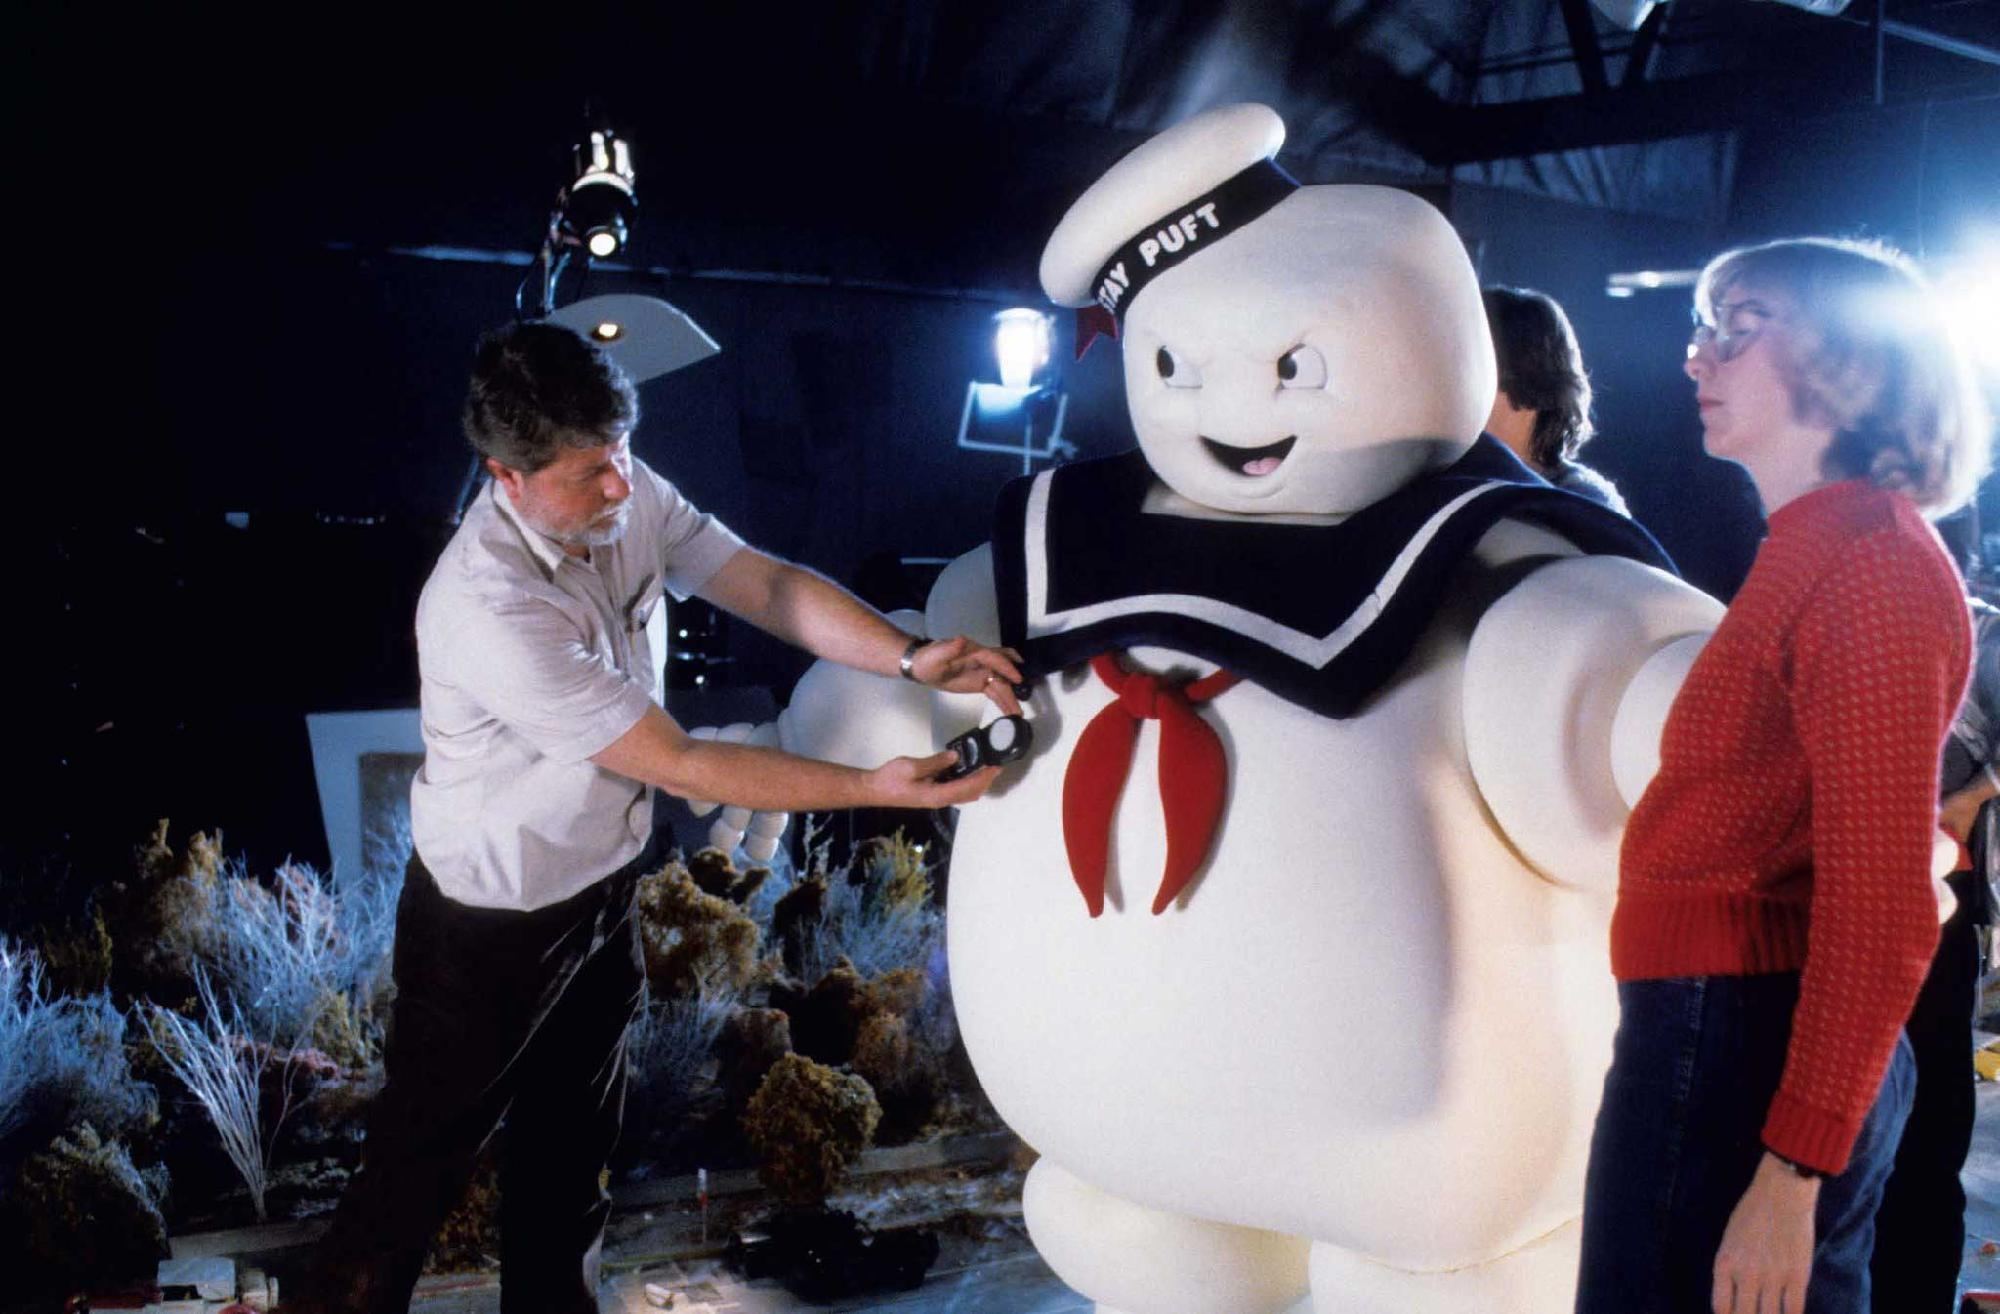 Stay puft...